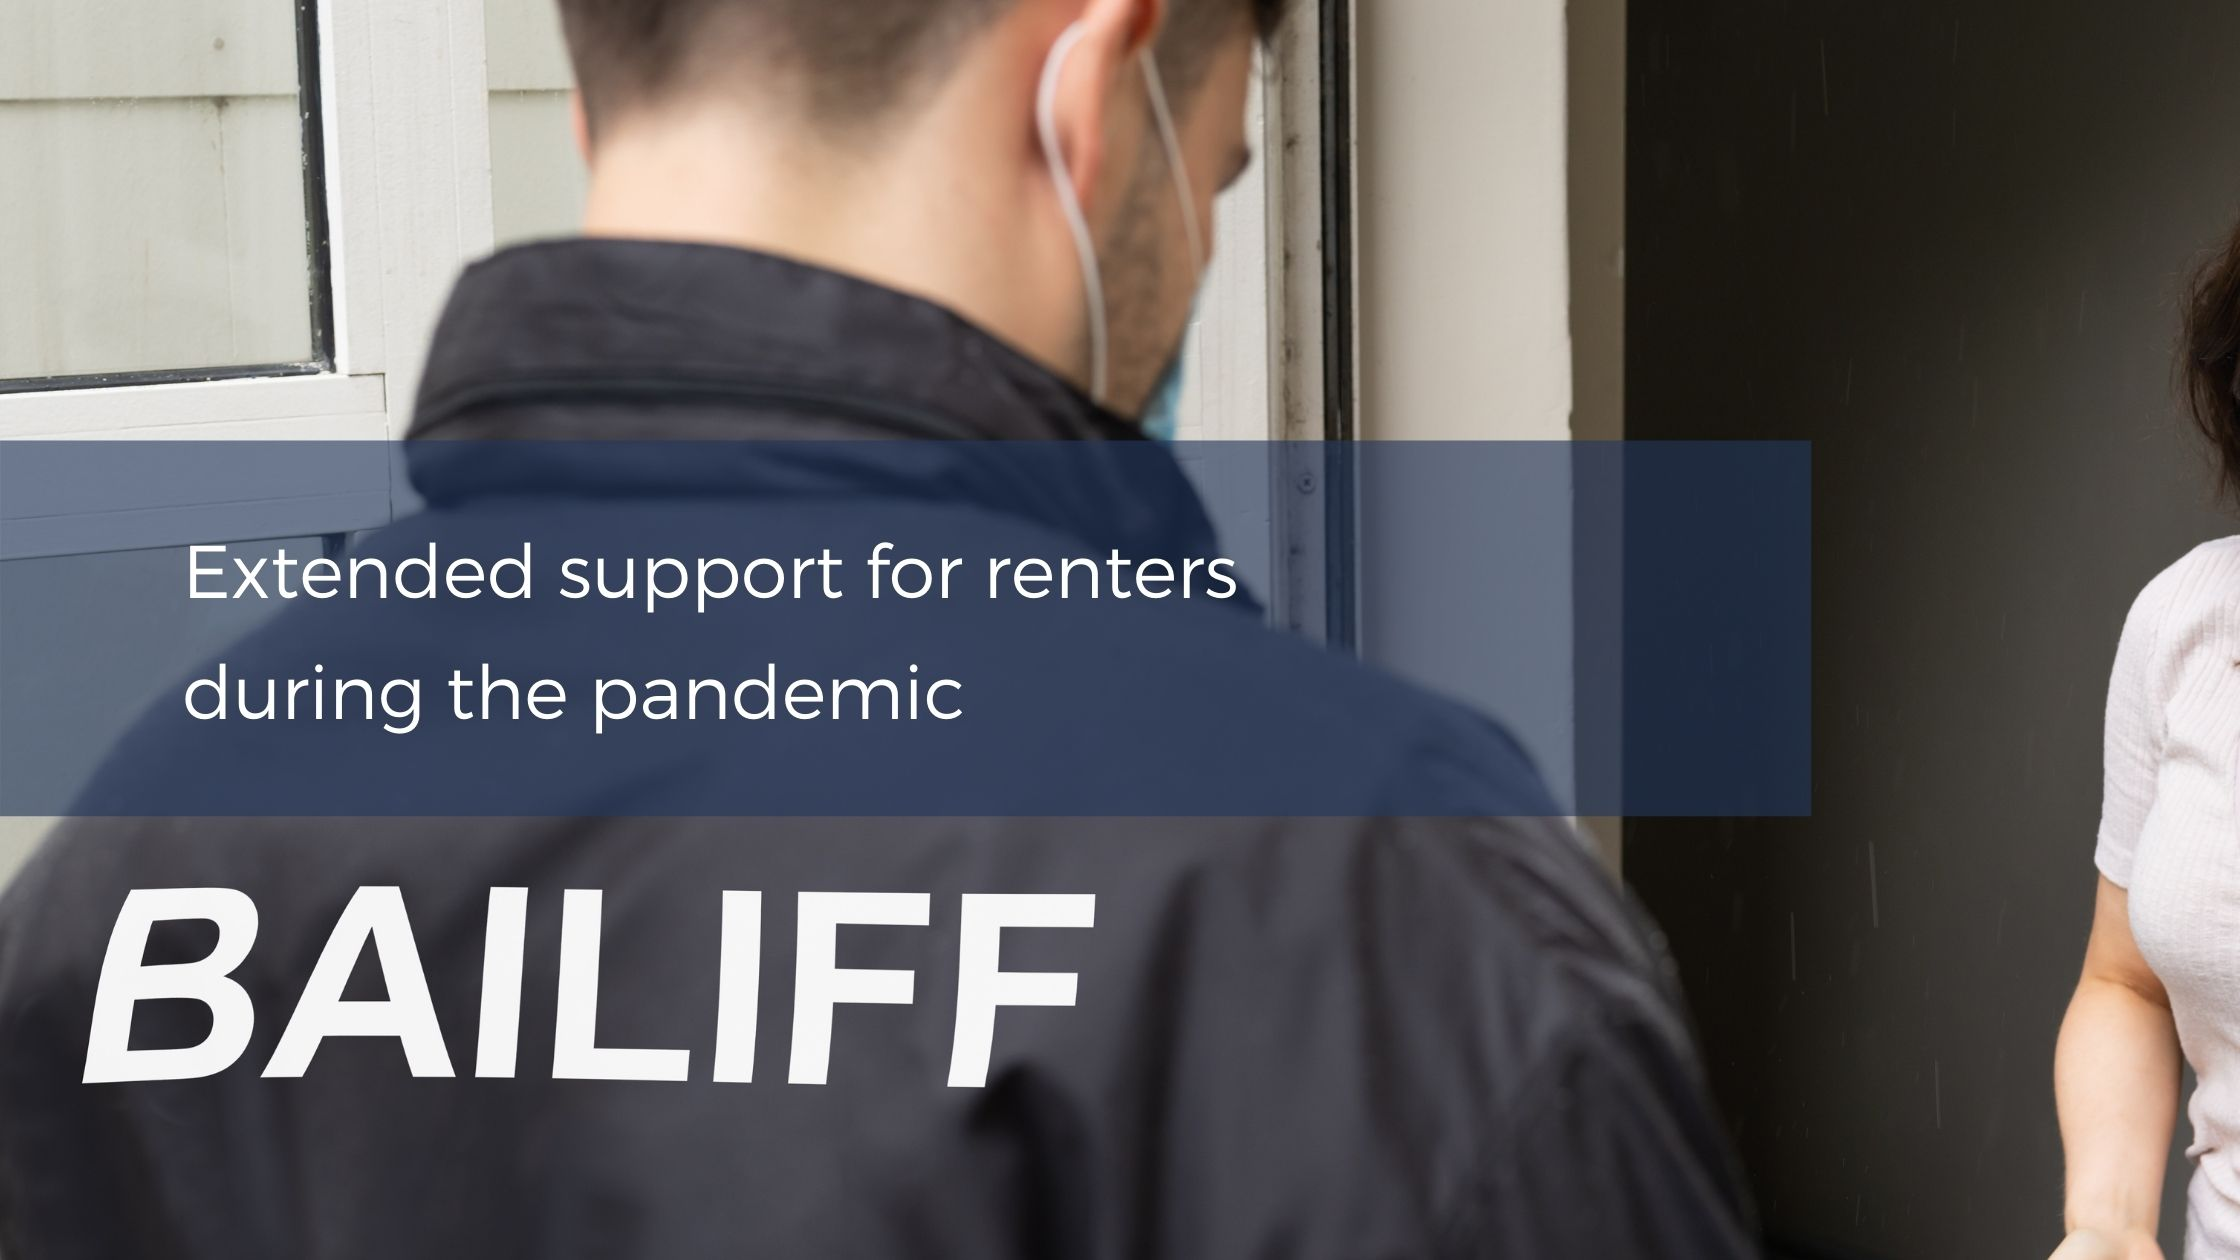 extended support for renters during the pandemic